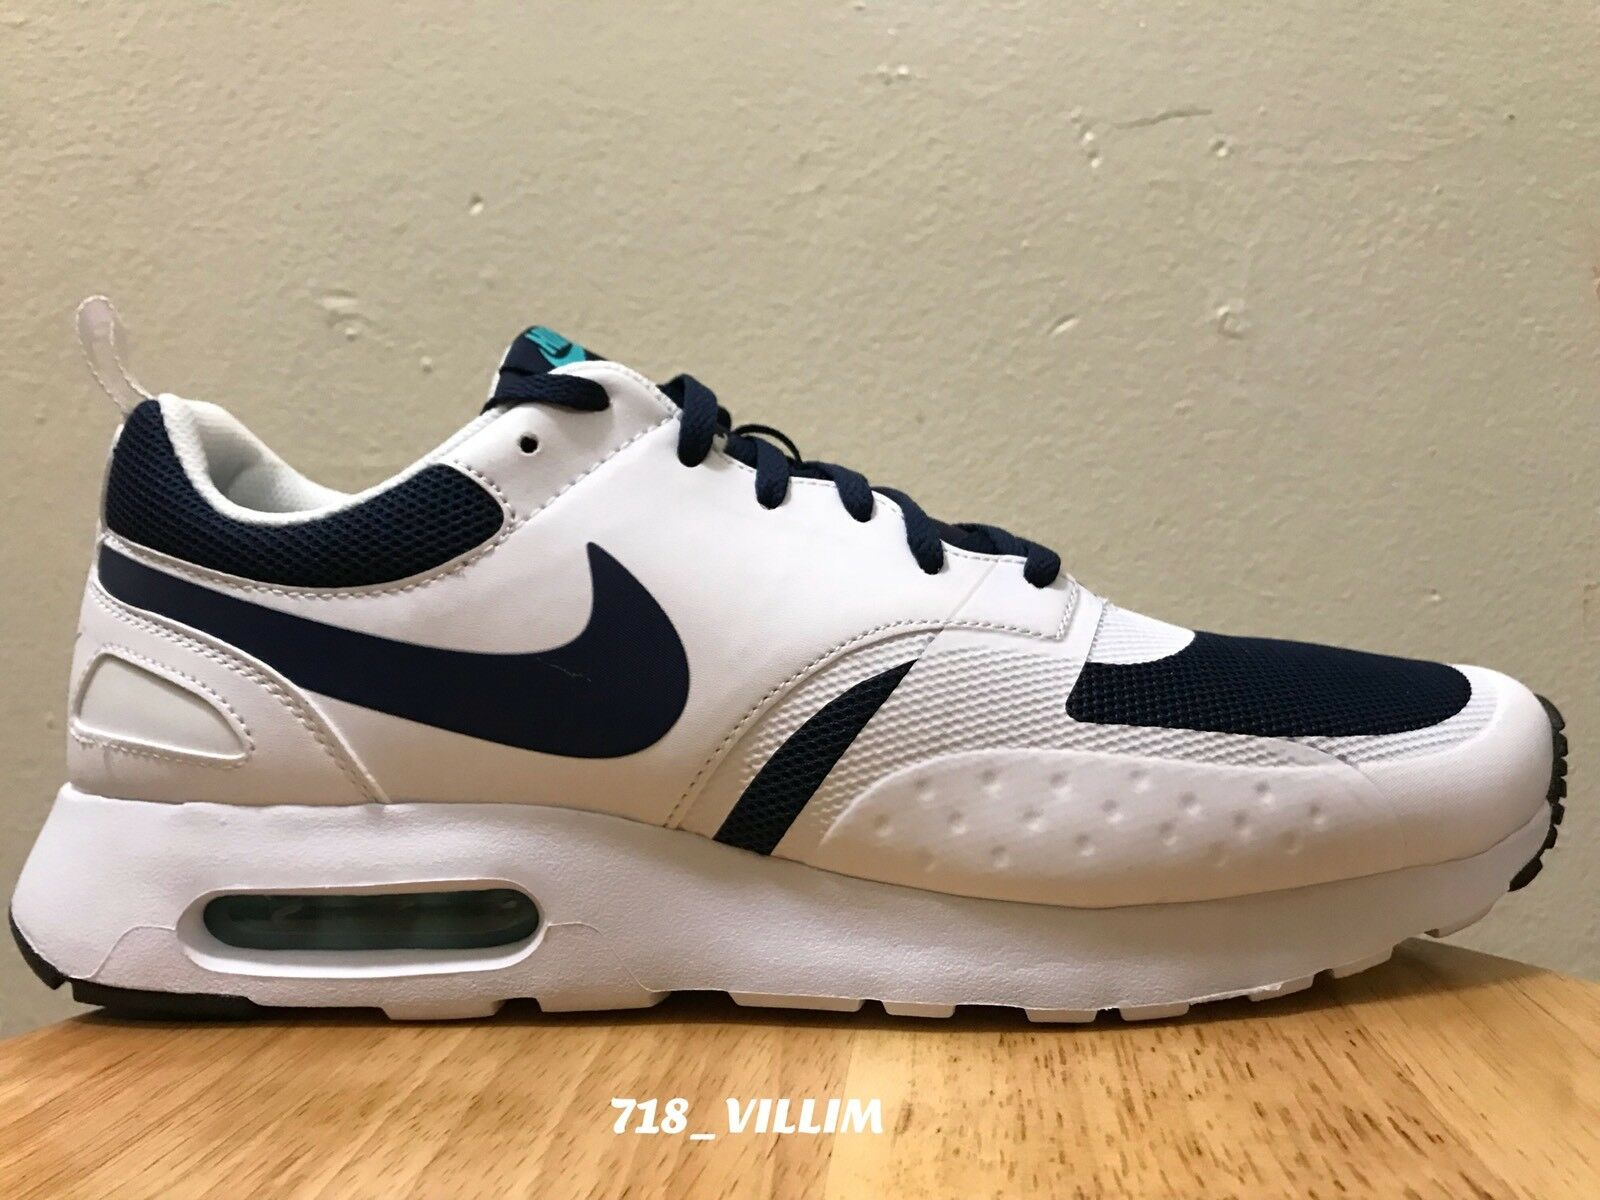 new arrival e98ba e199a NIKE AIR MAX VISION MIDNIGHT NAVY 918230 400 SIZE 12 12 12 NEW 90 95 VAPOR